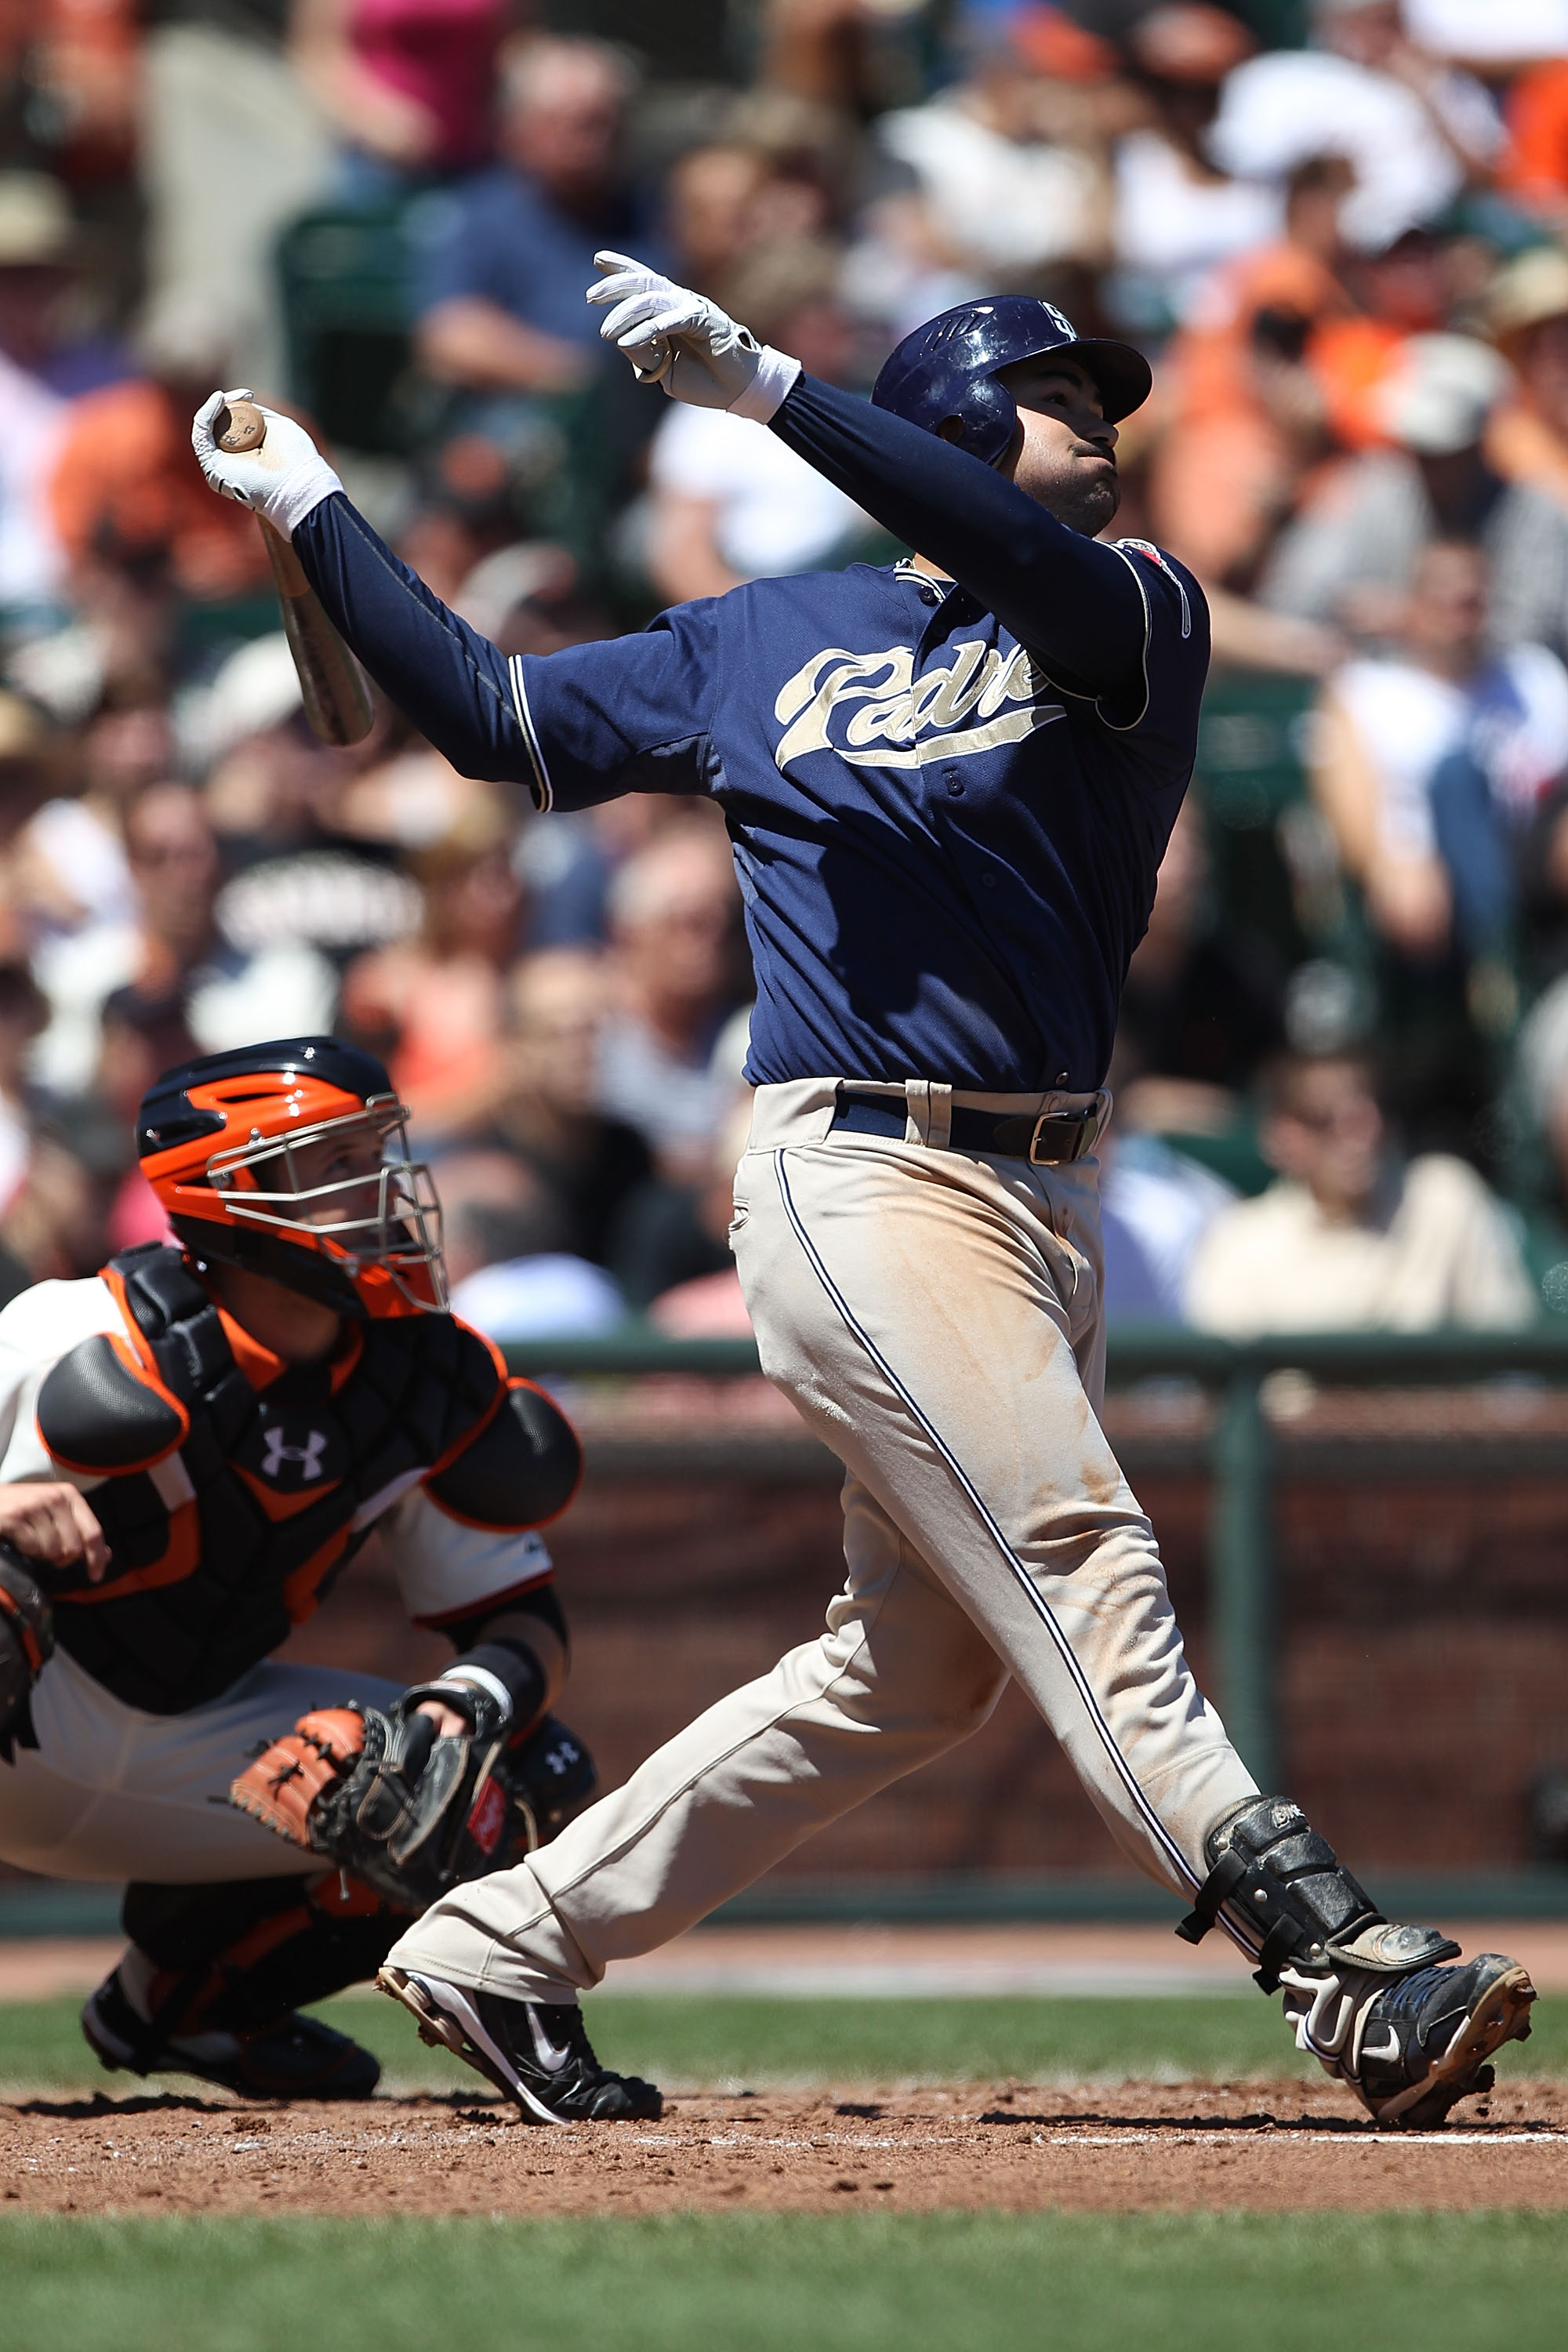 SAN FRANCISCO - AUGUST 14:  Adrian Gonzalez #23 of the San Diego Padres bats against the San Francisco Giants during an MLB game at AT&T Park on August 14, 2010 in San Francisco, California.  (Photo by Jed Jacobsohn/Getty Images)